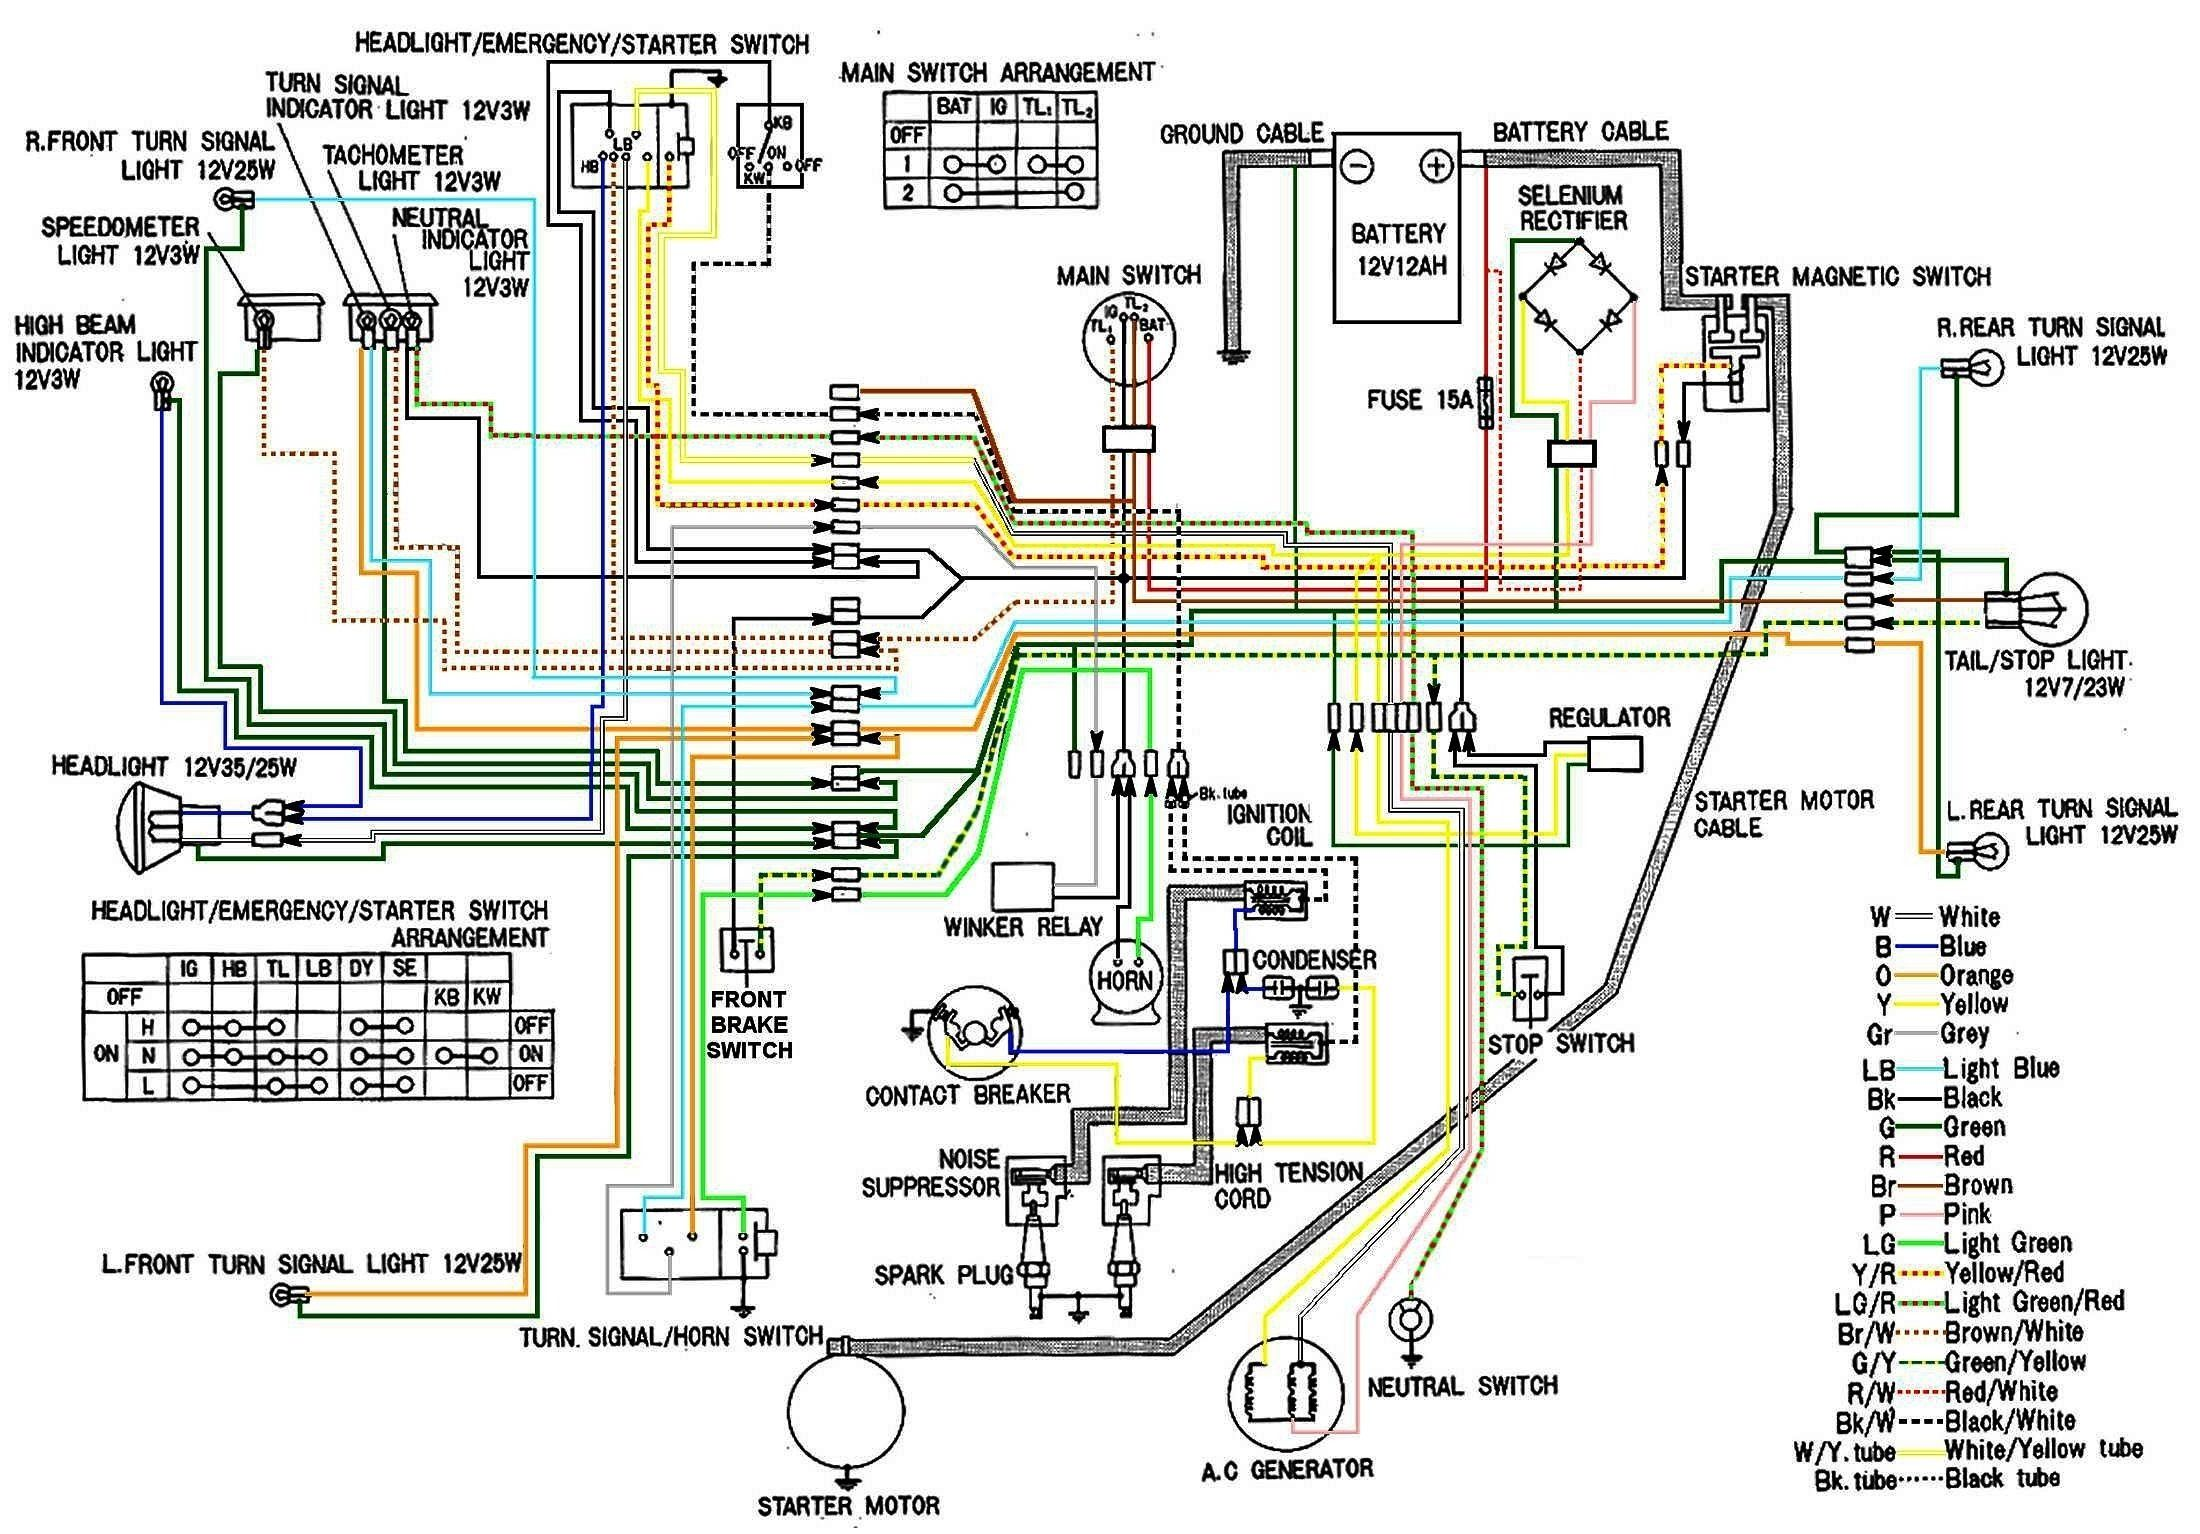 [SCHEMATICS_4CA]  Plug Besides Cb360 Wiring Diagram On Honda Cb Wiring Diagrams - Wire with  regard to Cb360 Wiring Diagram | Electrical wiring diagram, Diagram, Wire | Honda Cb160 Wiring Diagram |  | Pinterest